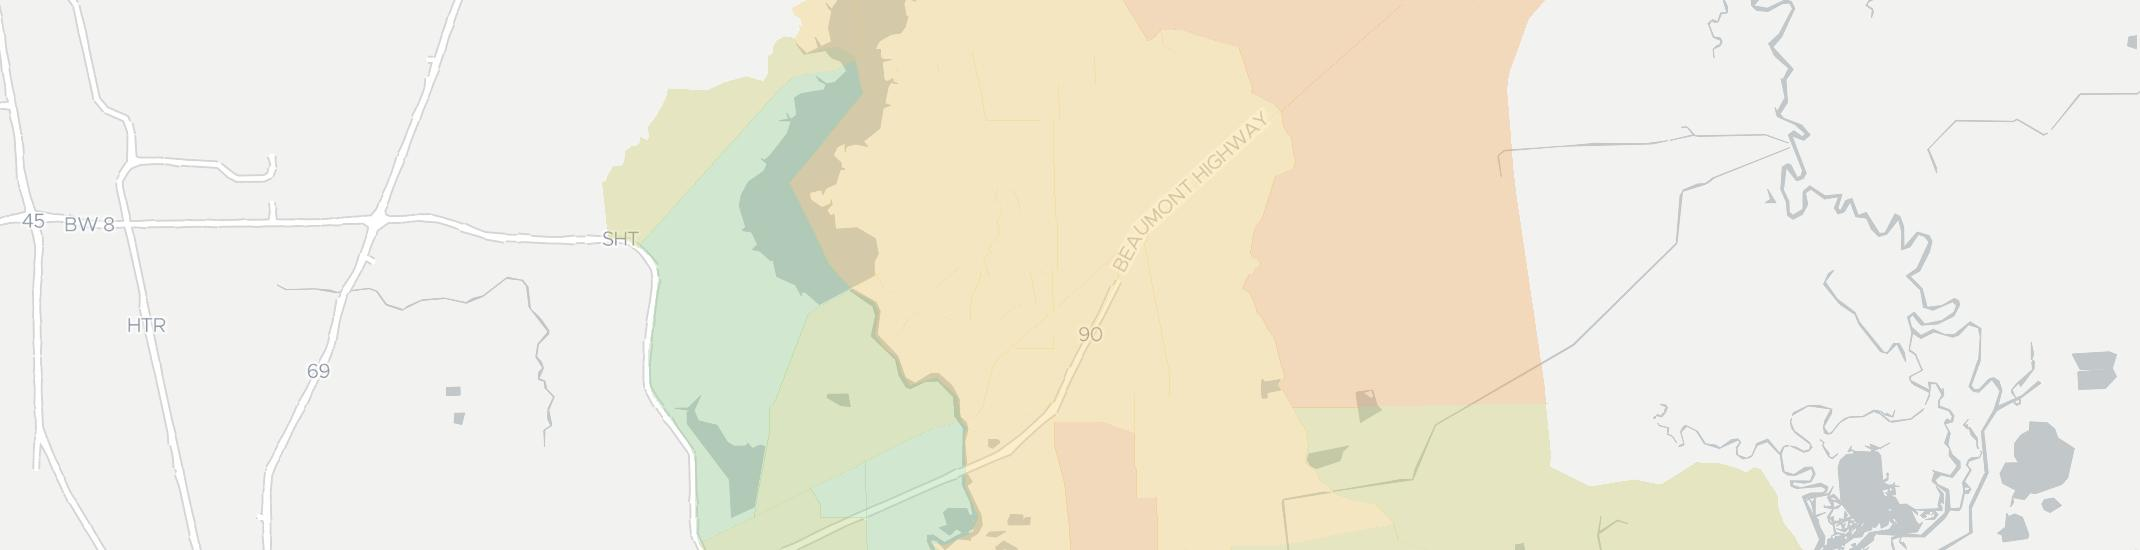 Map Of Crosby Tx 77532.Internet Providers In Crosby Tx Compare 15 Providers